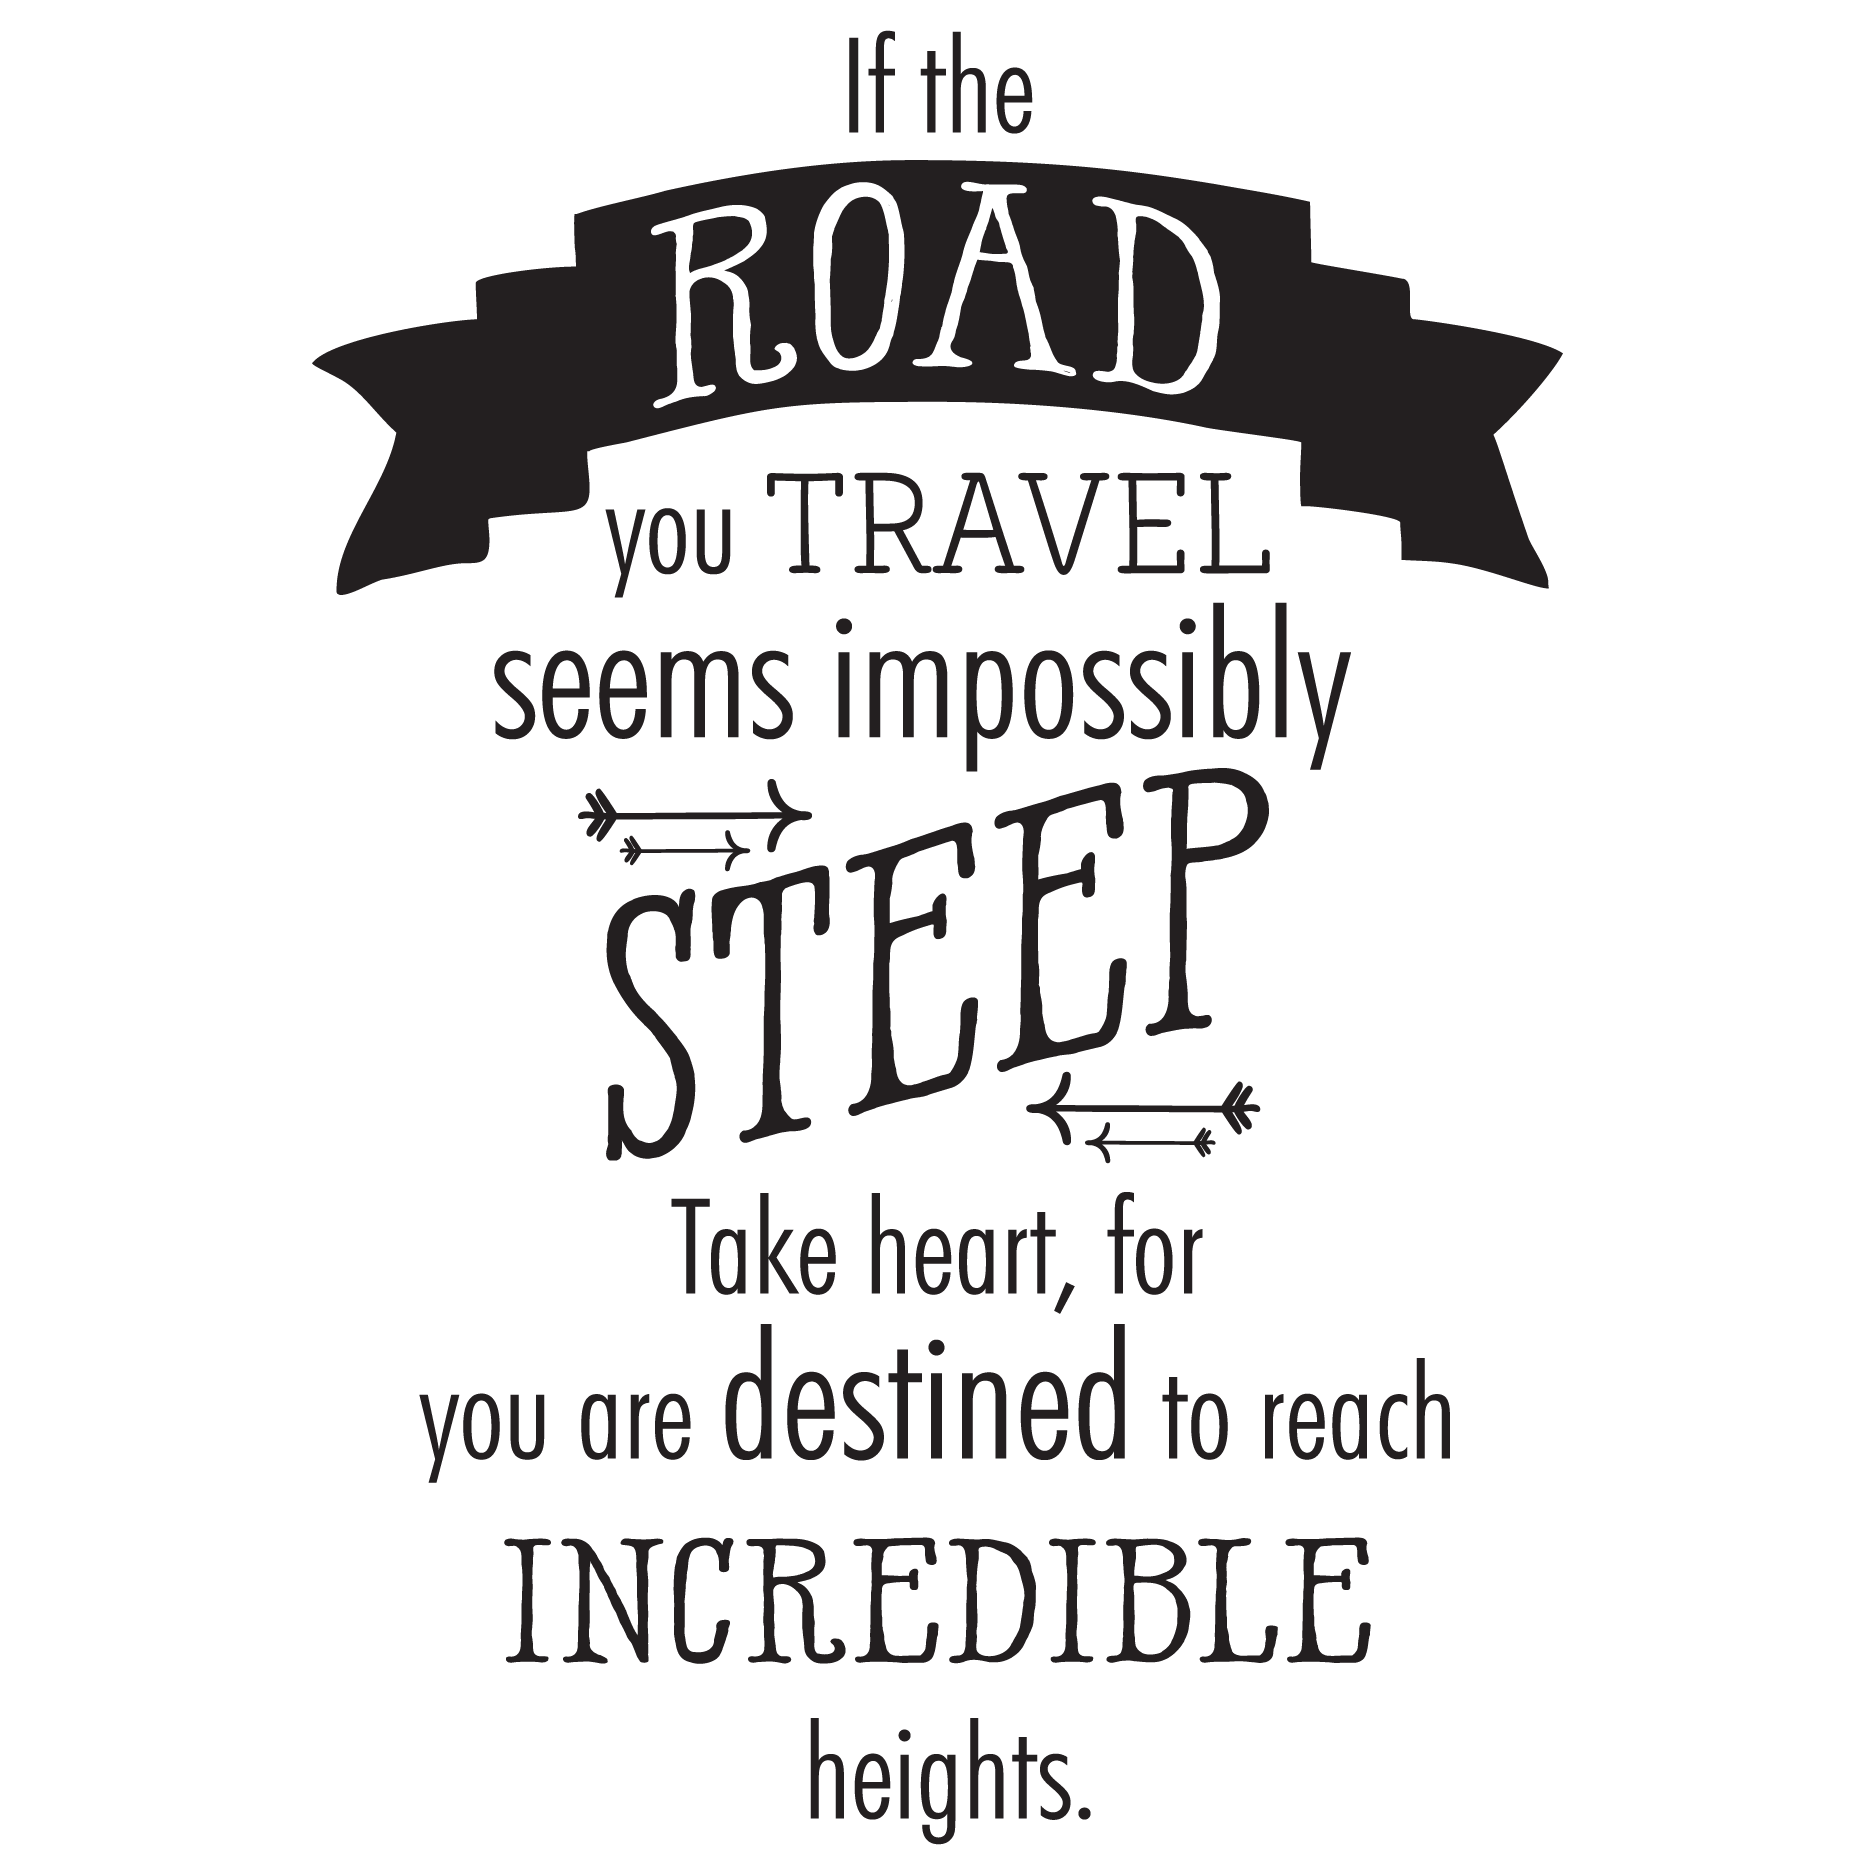 if the road you travel wall quotes u2122 decal